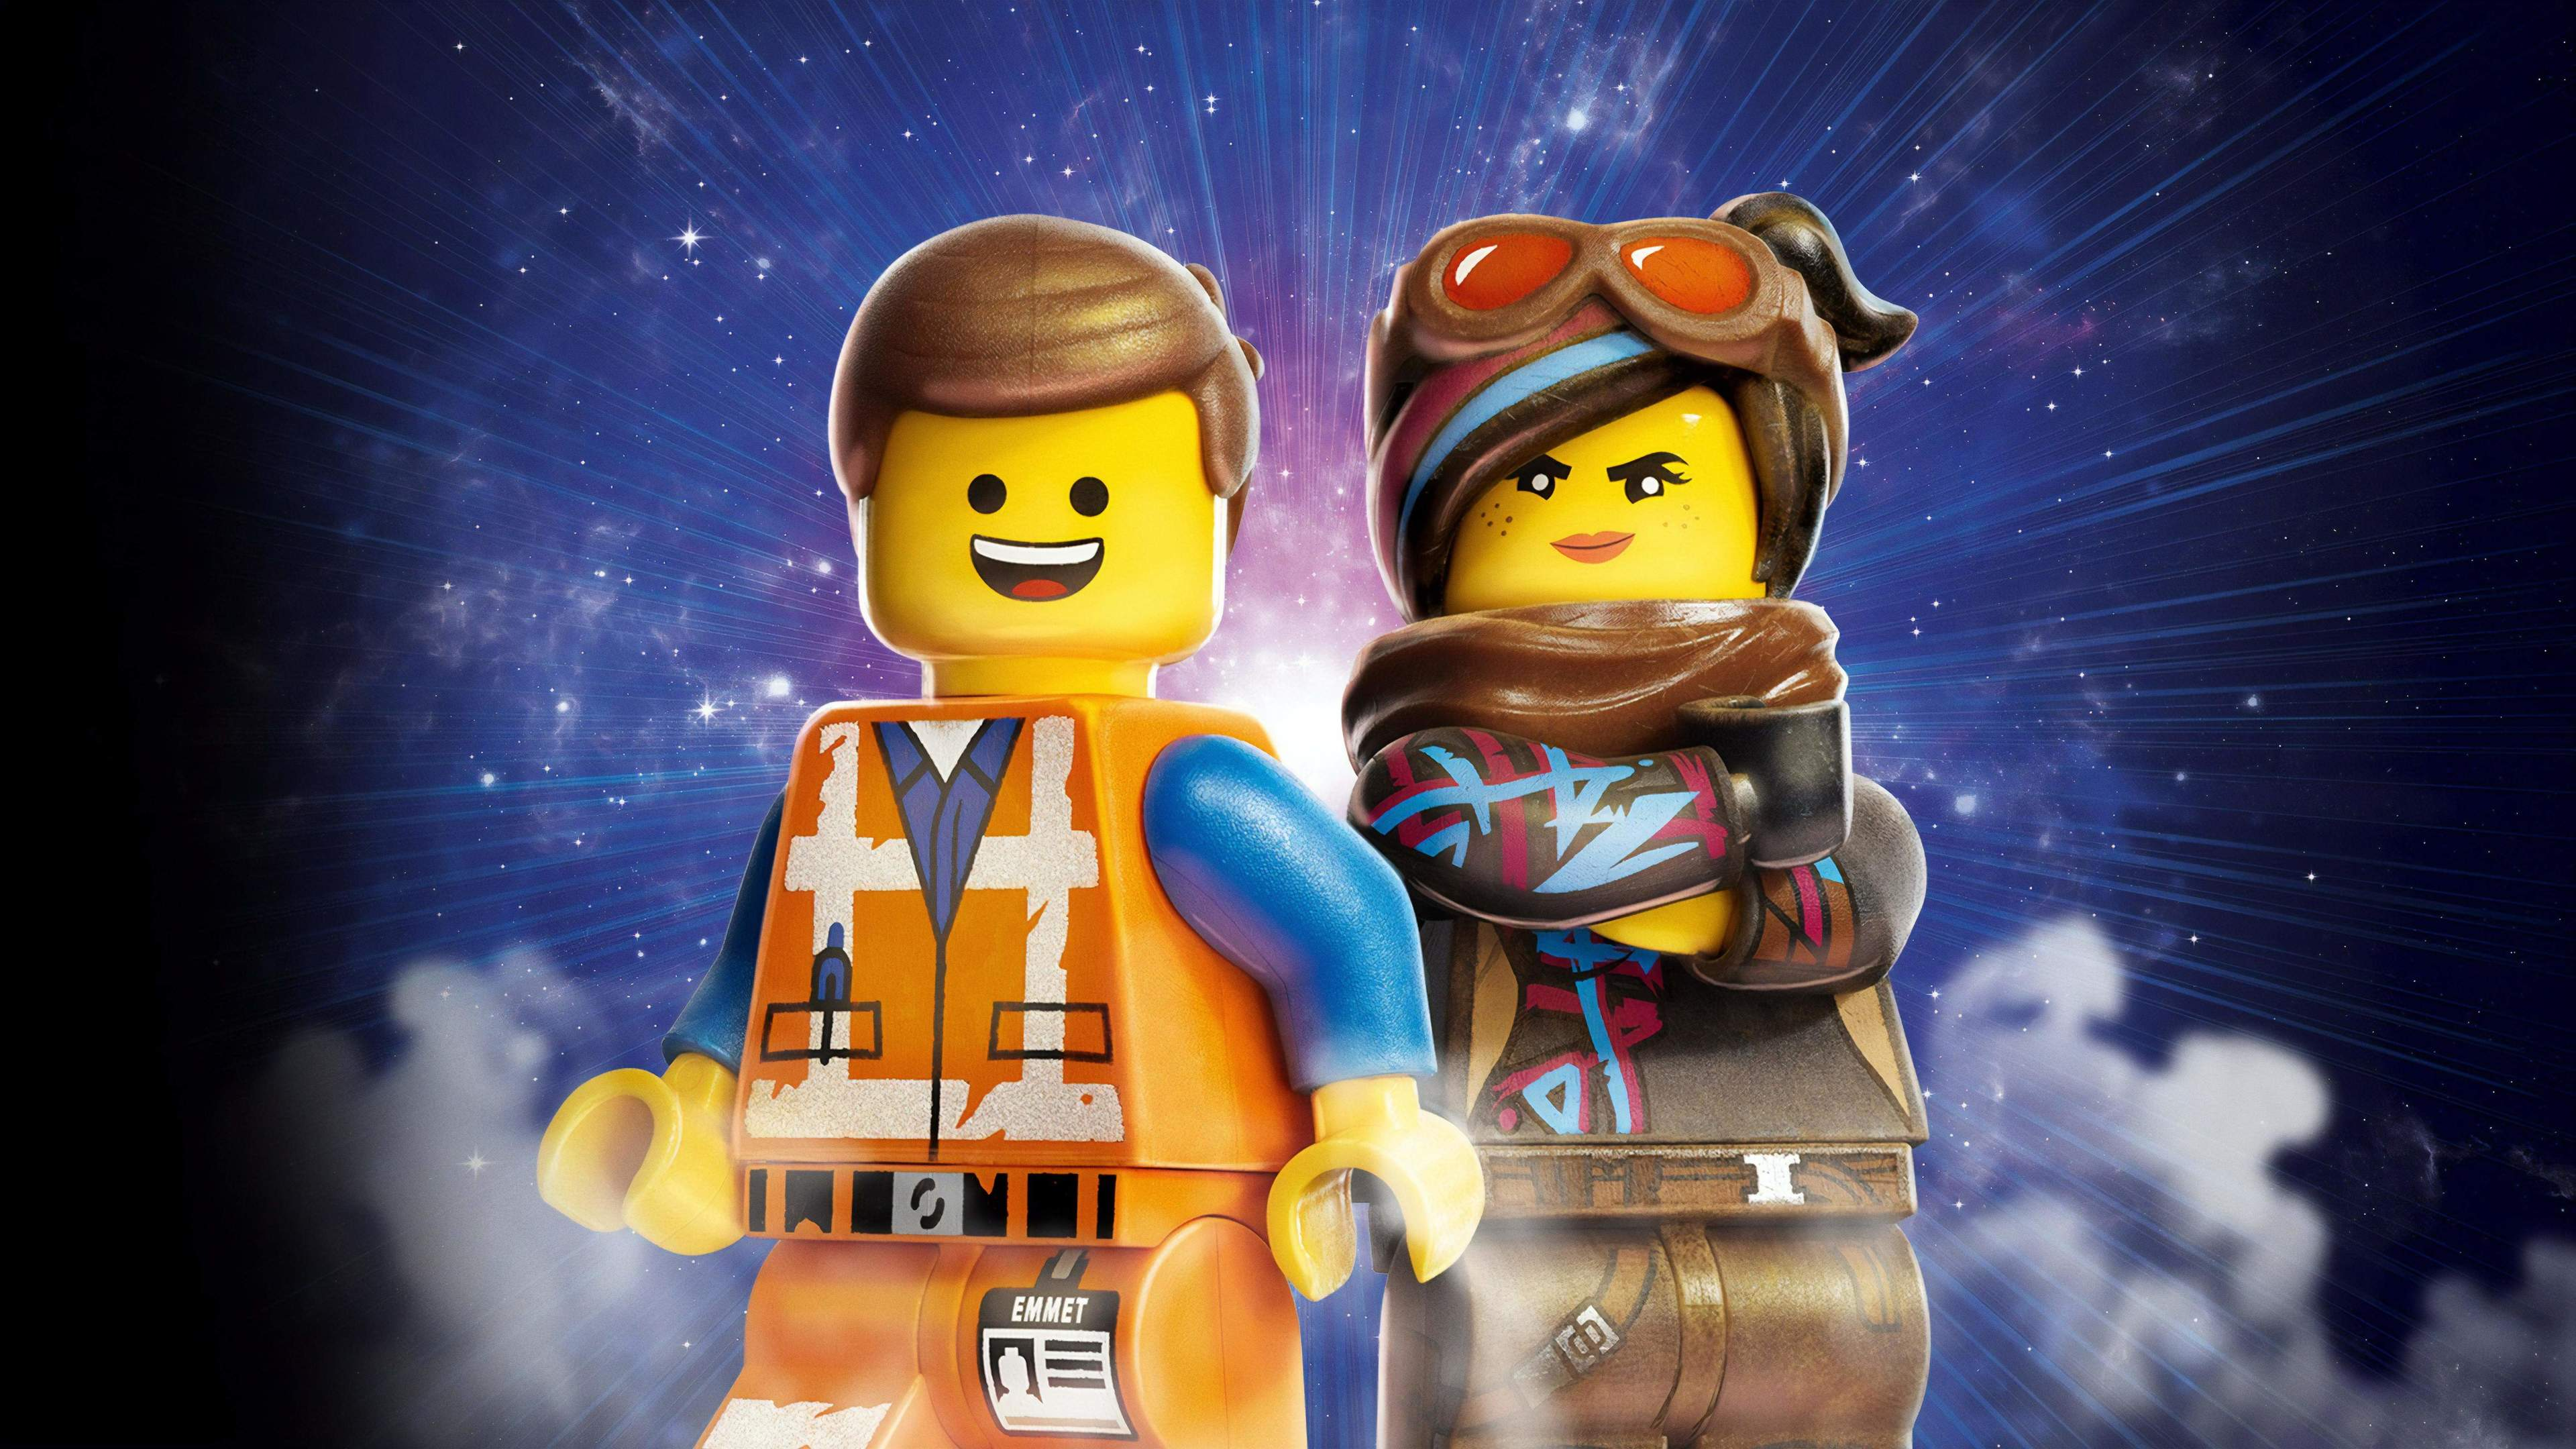 the lego movie 2 the second part 2019 4k 1553073904 - The Lego Movie 2 The Second Part 2019 4k - the lego movie 2 wallpapers, the lego movie 2 the second part wallpapers, movies wallpapers, hd-wallpapers, 8k wallpapers, 5k wallpapers, 4k-wallpapers, 2019 movies wallpapers